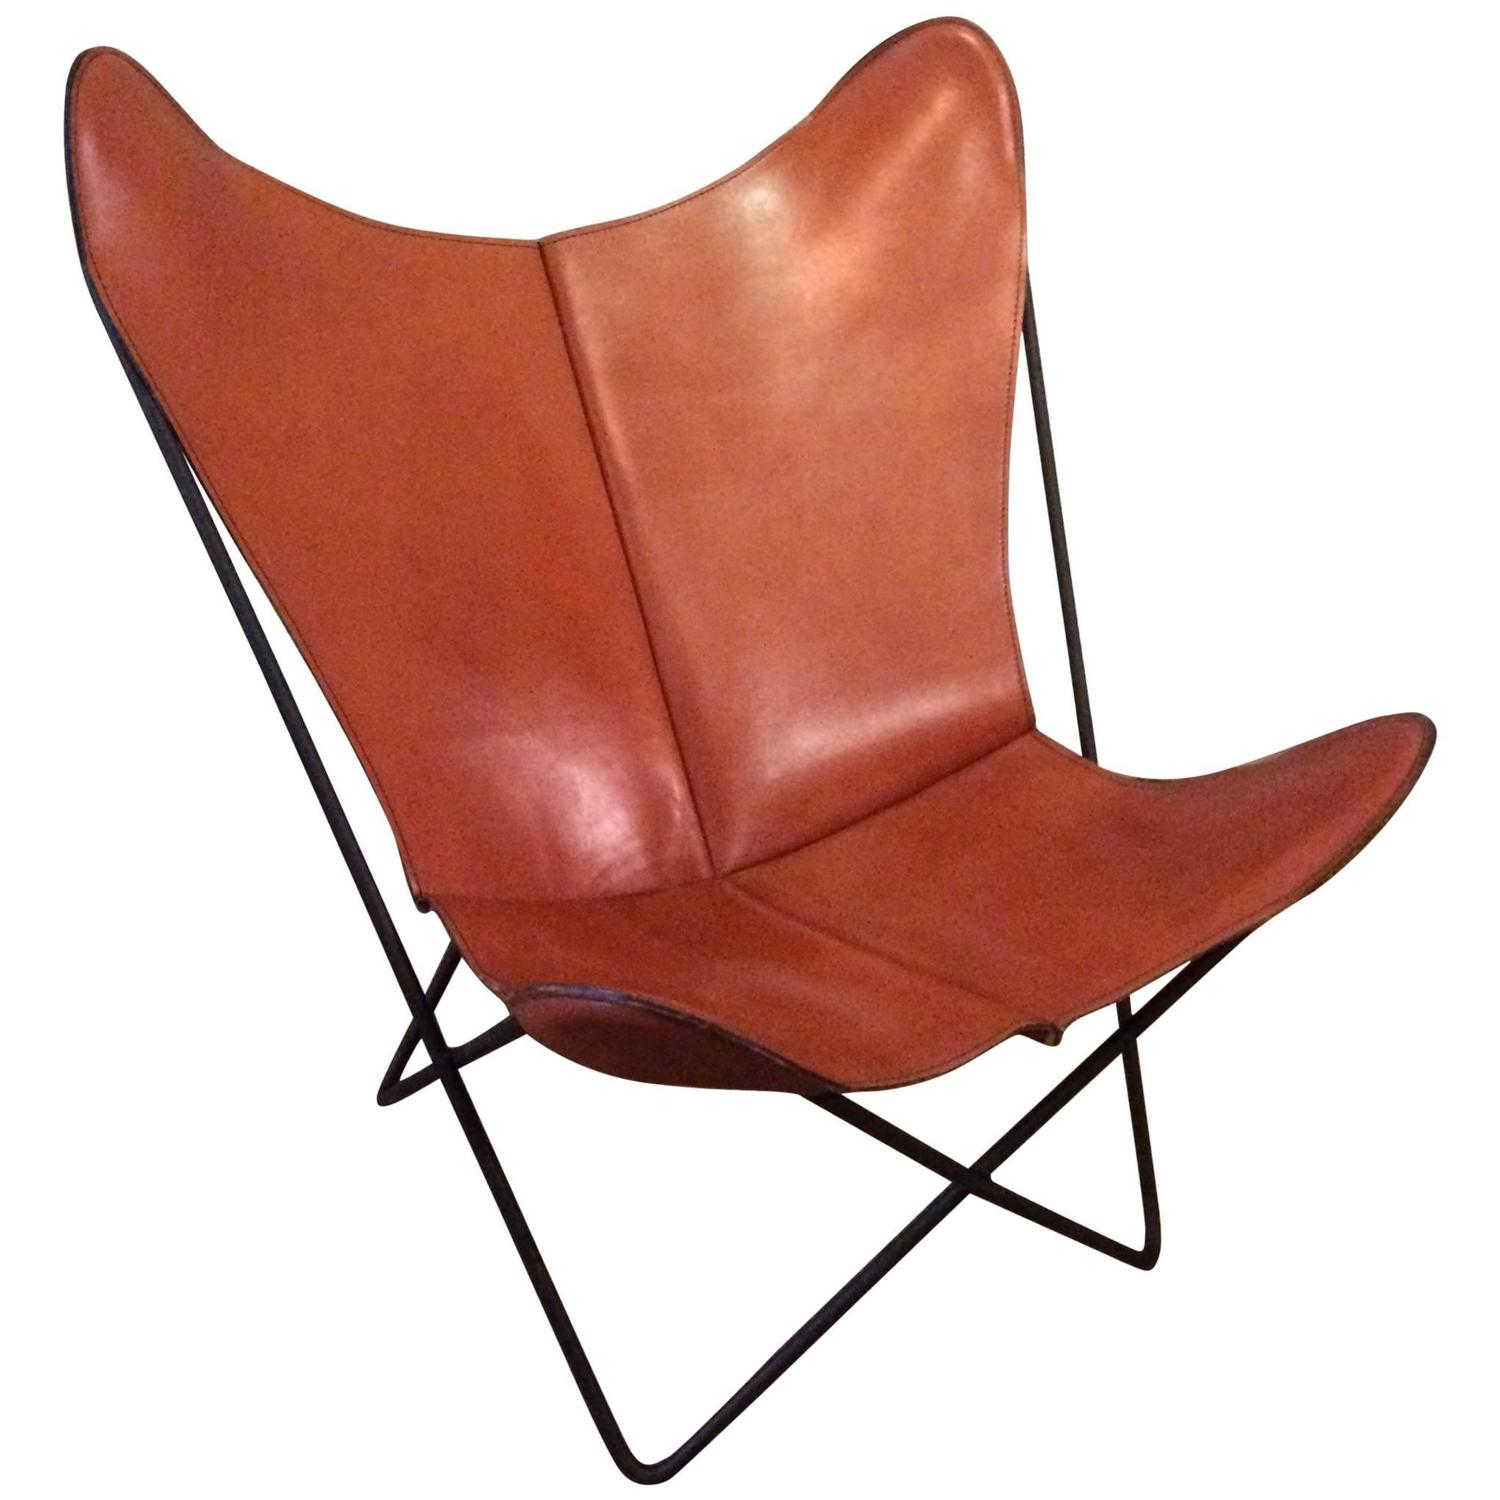 butterfly lounge chair folding wooden directors plans leather by jorge ferrari hardoy for knoll